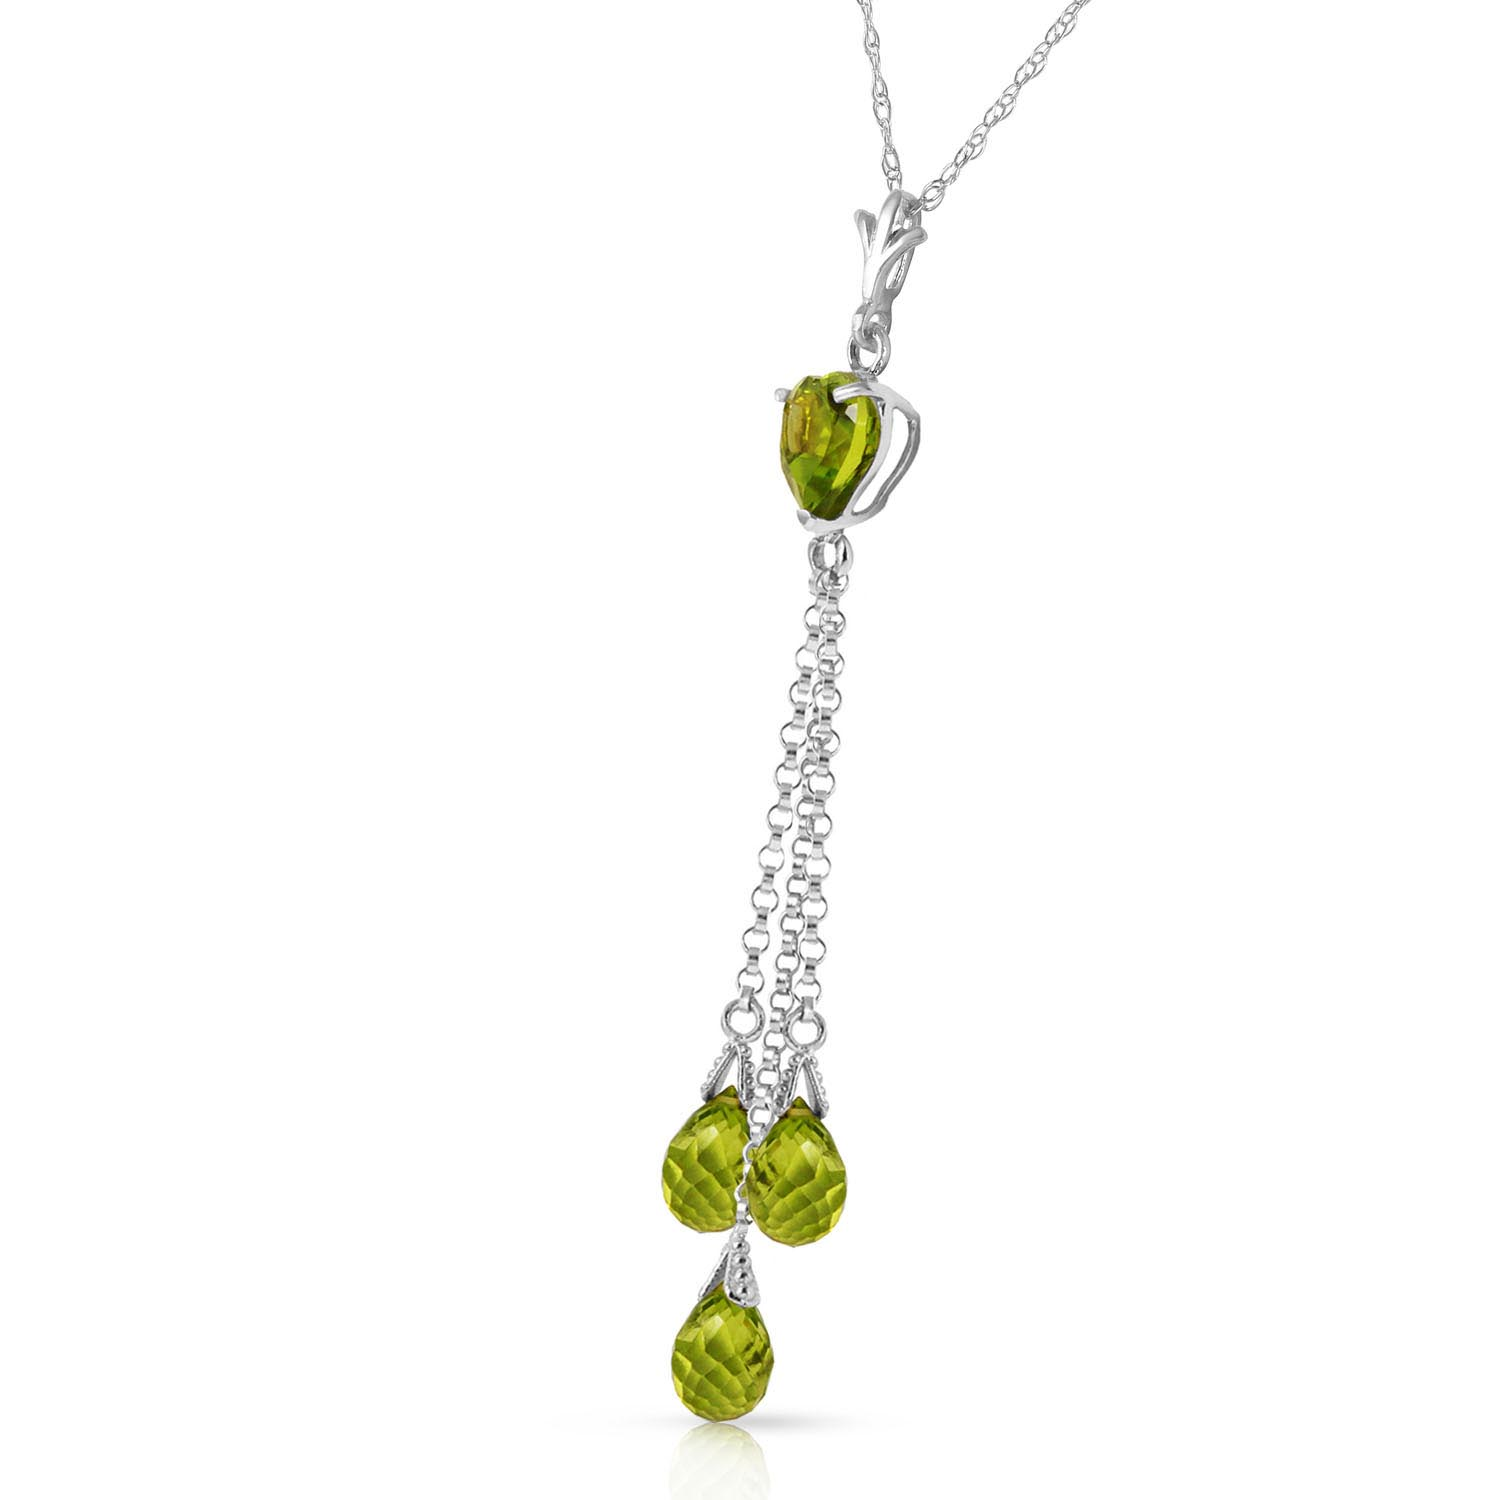 Peridot Comet Tail Heart Pendant Necklace 4.75ctw in 9ct White Gold